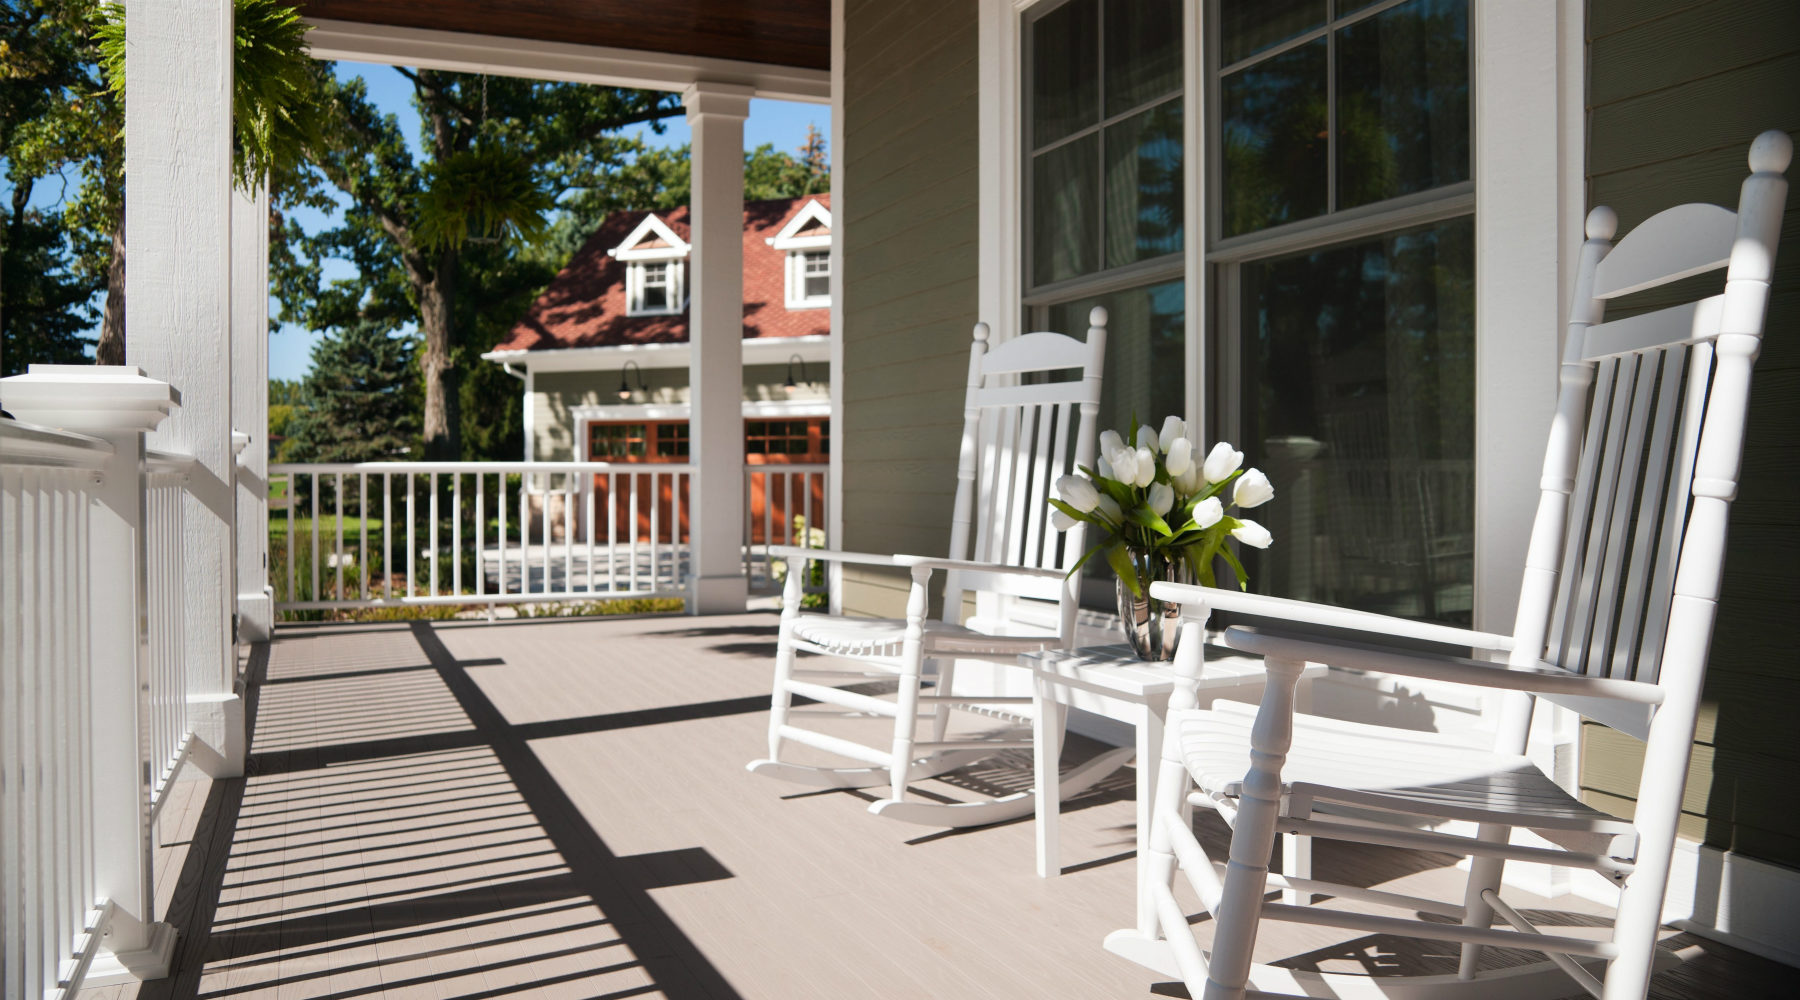 Front porch white rocking chairs and flowers